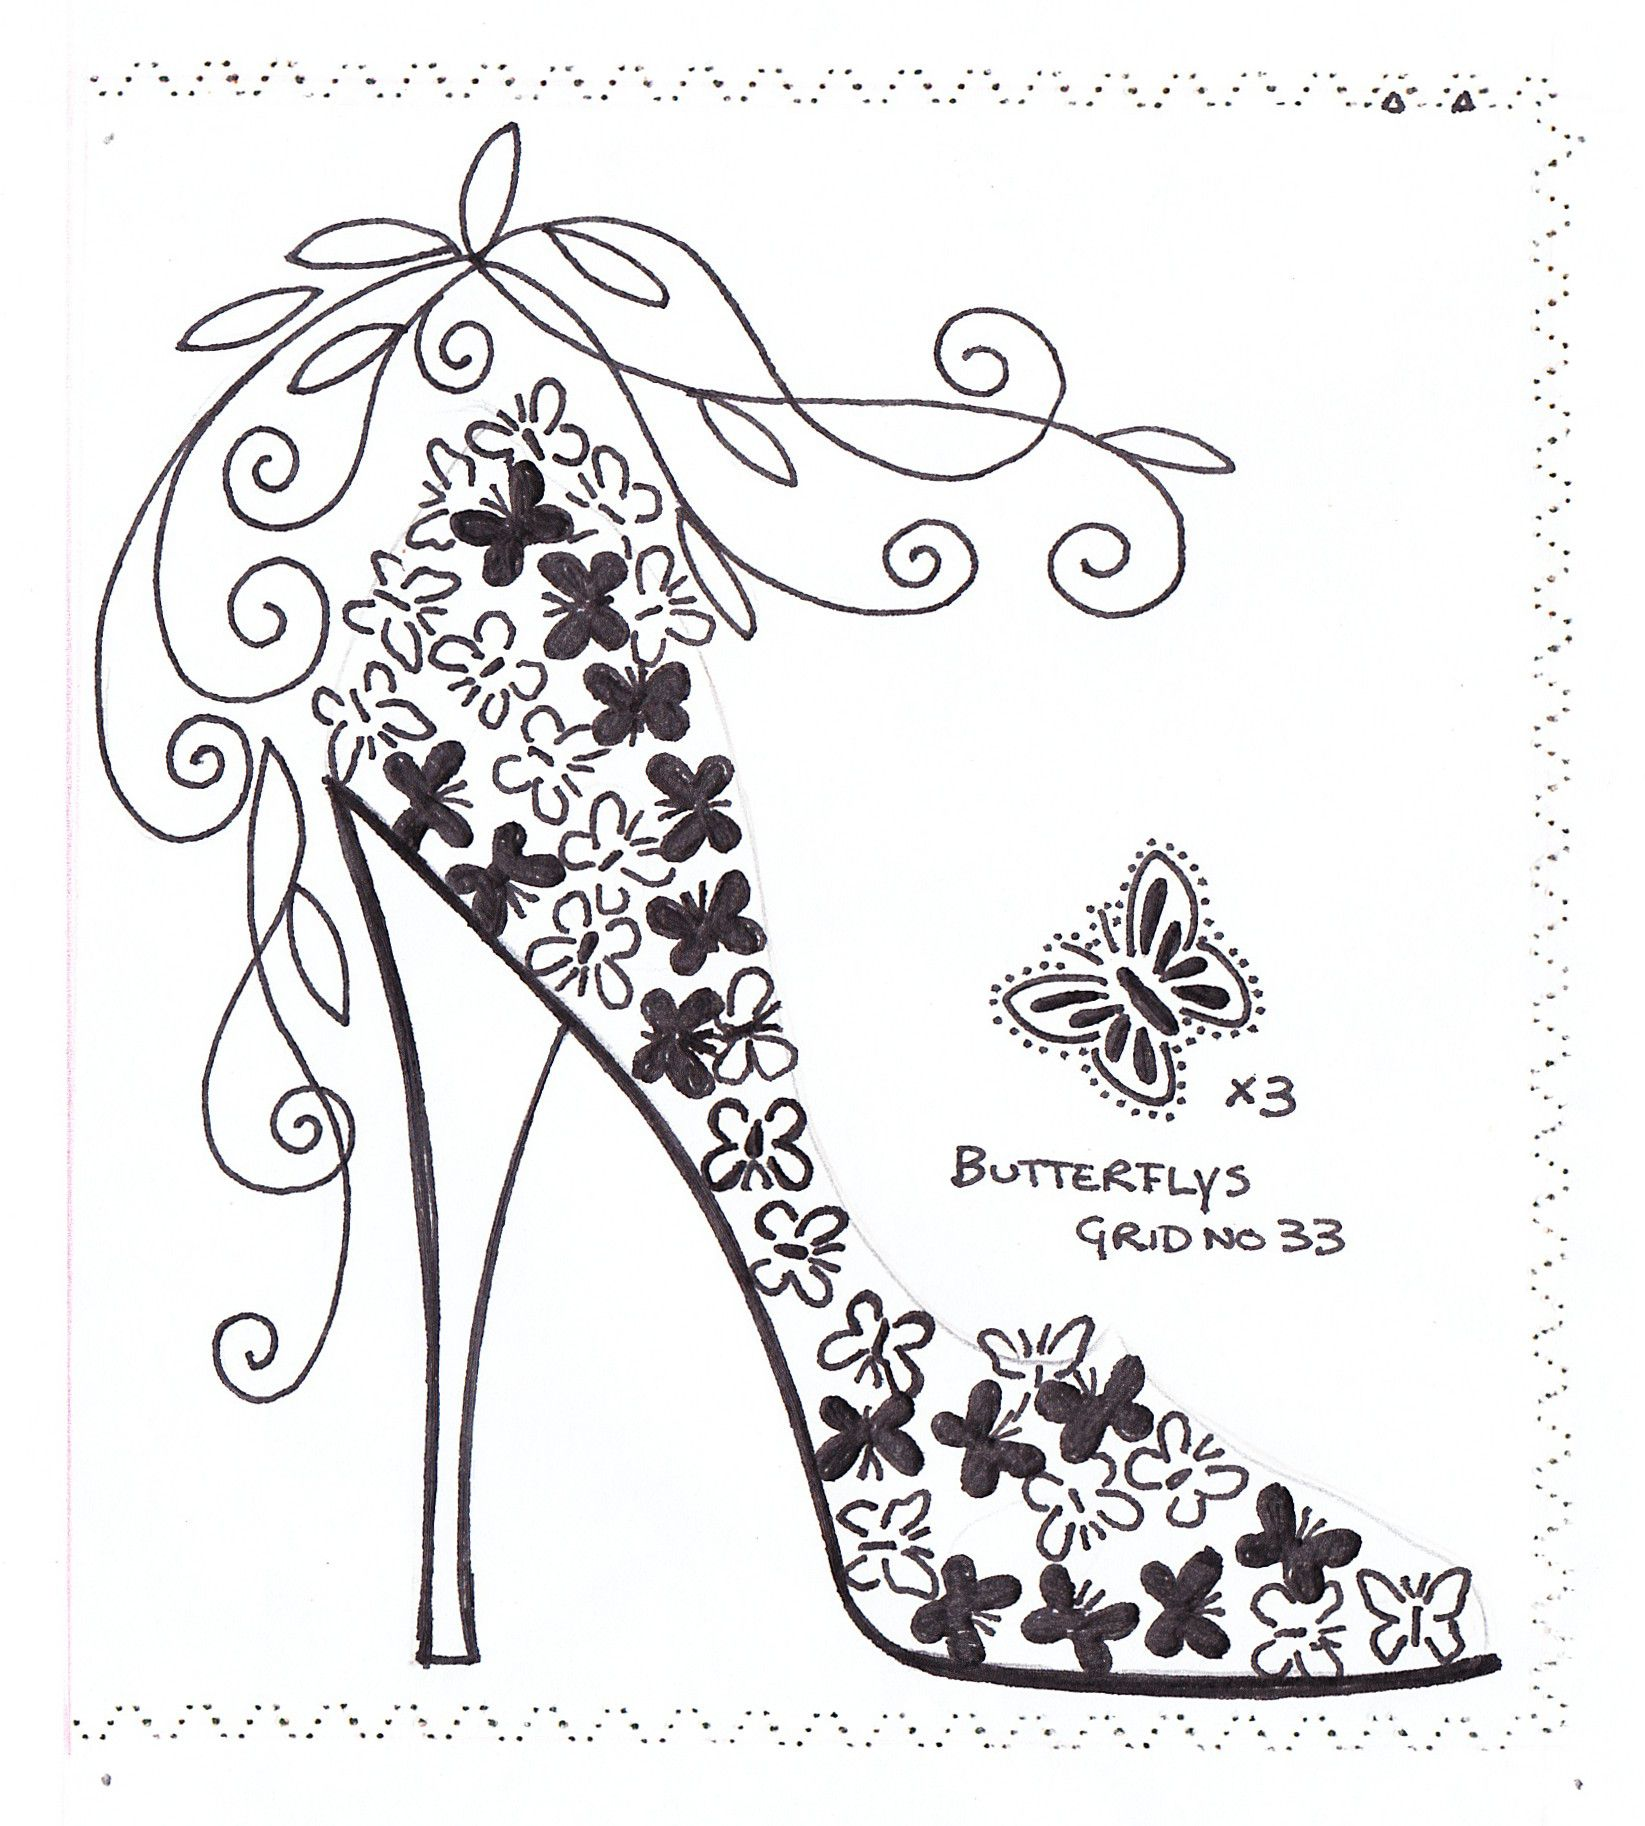 Zapato de mariposas butterfly shoe Coloring pages